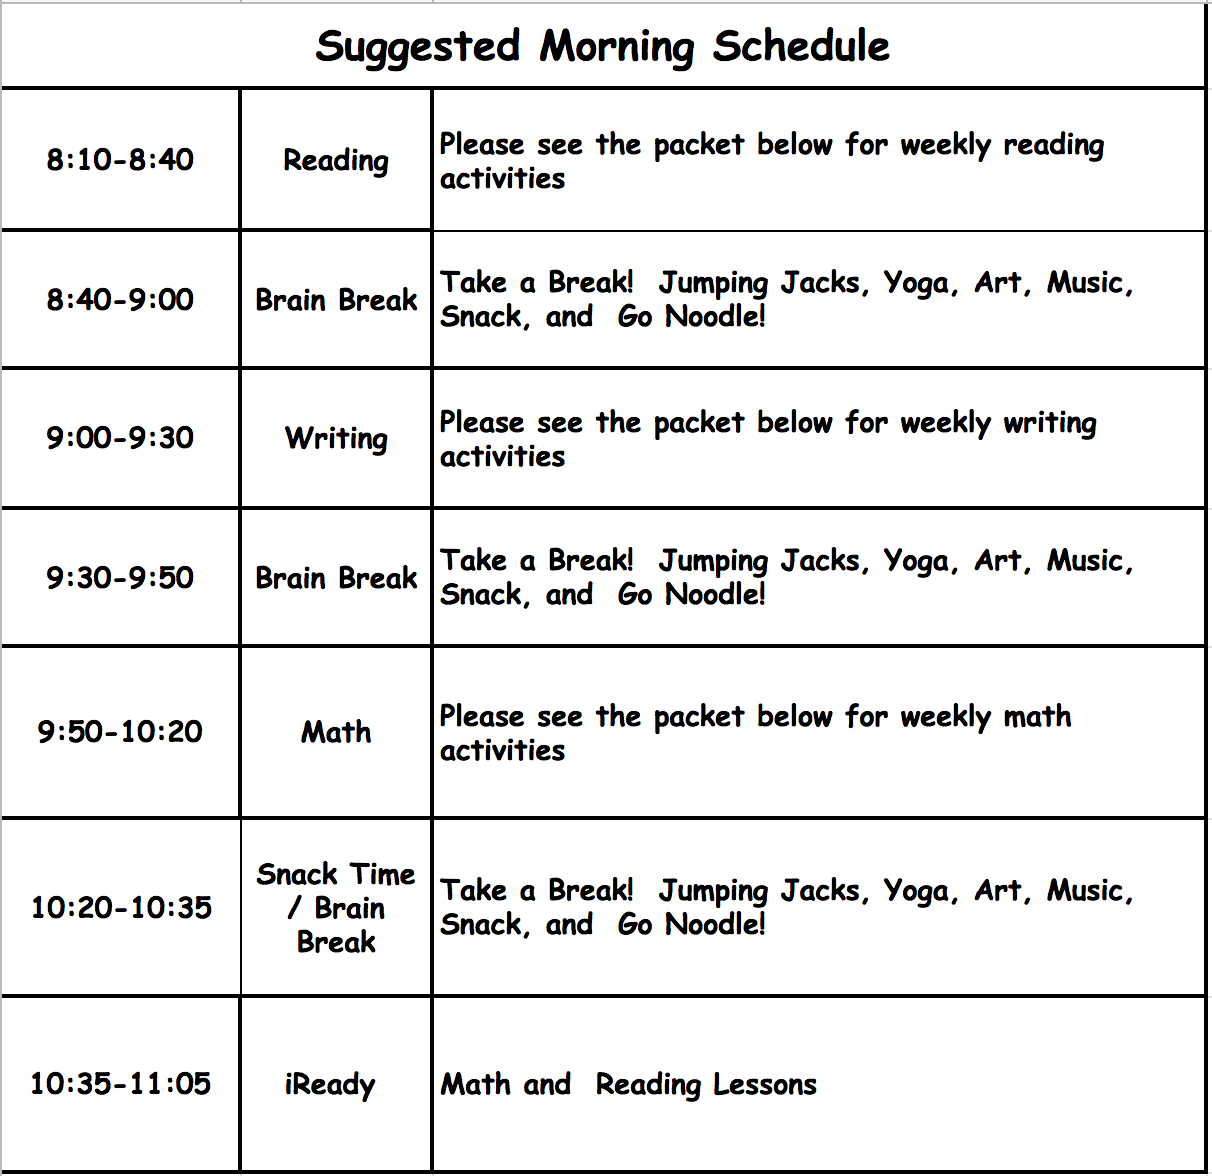 PROPOSED DAILY SCHEDULE